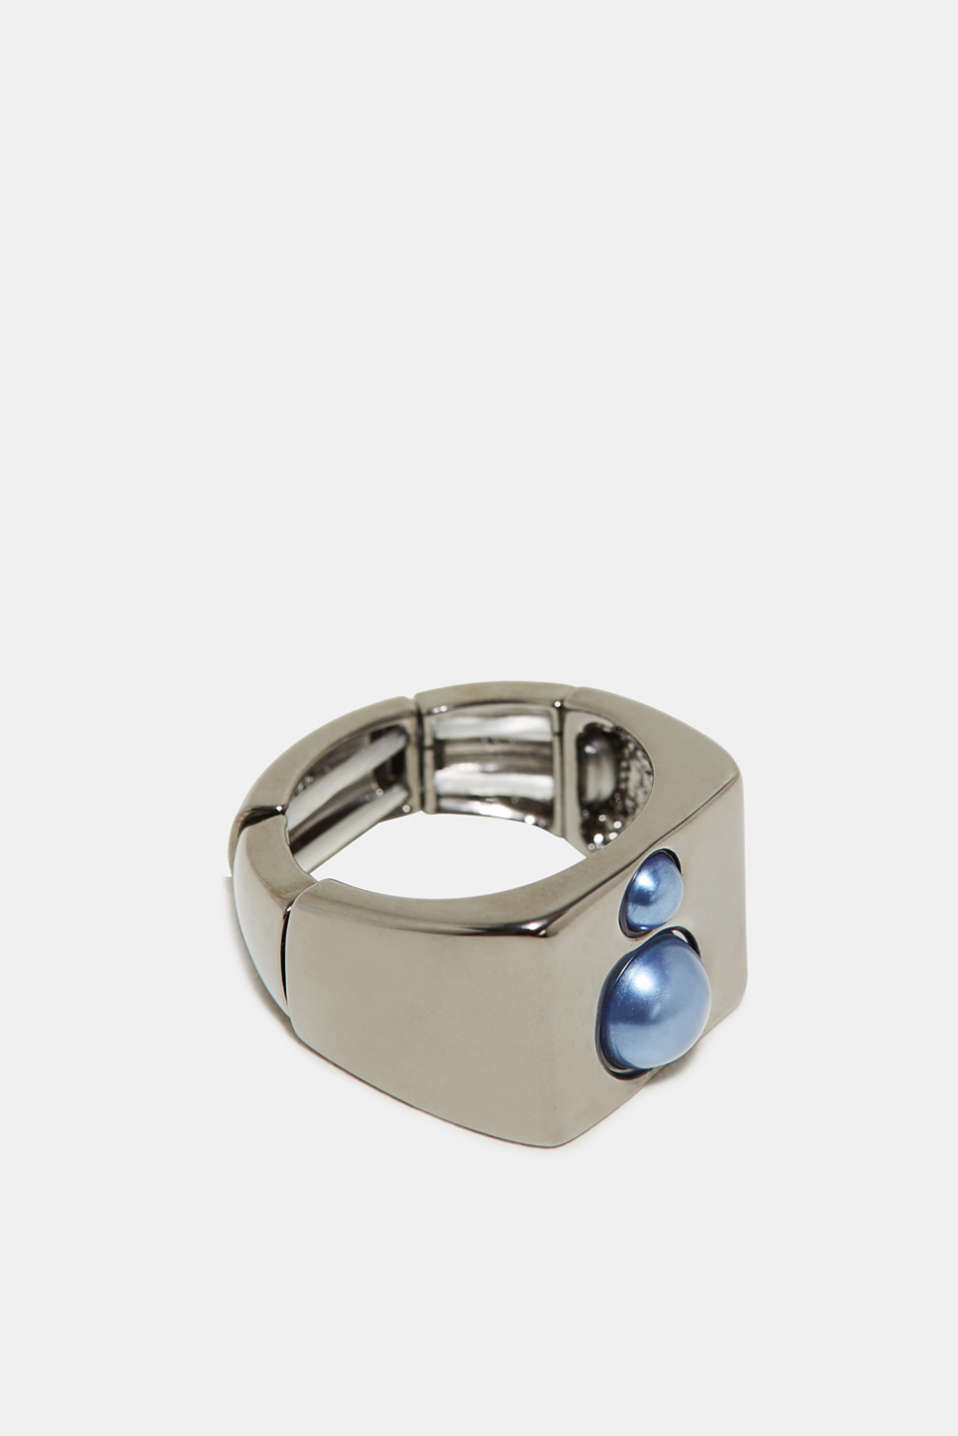 Esprit - Statement-Ring mit Perlen, aus Metall